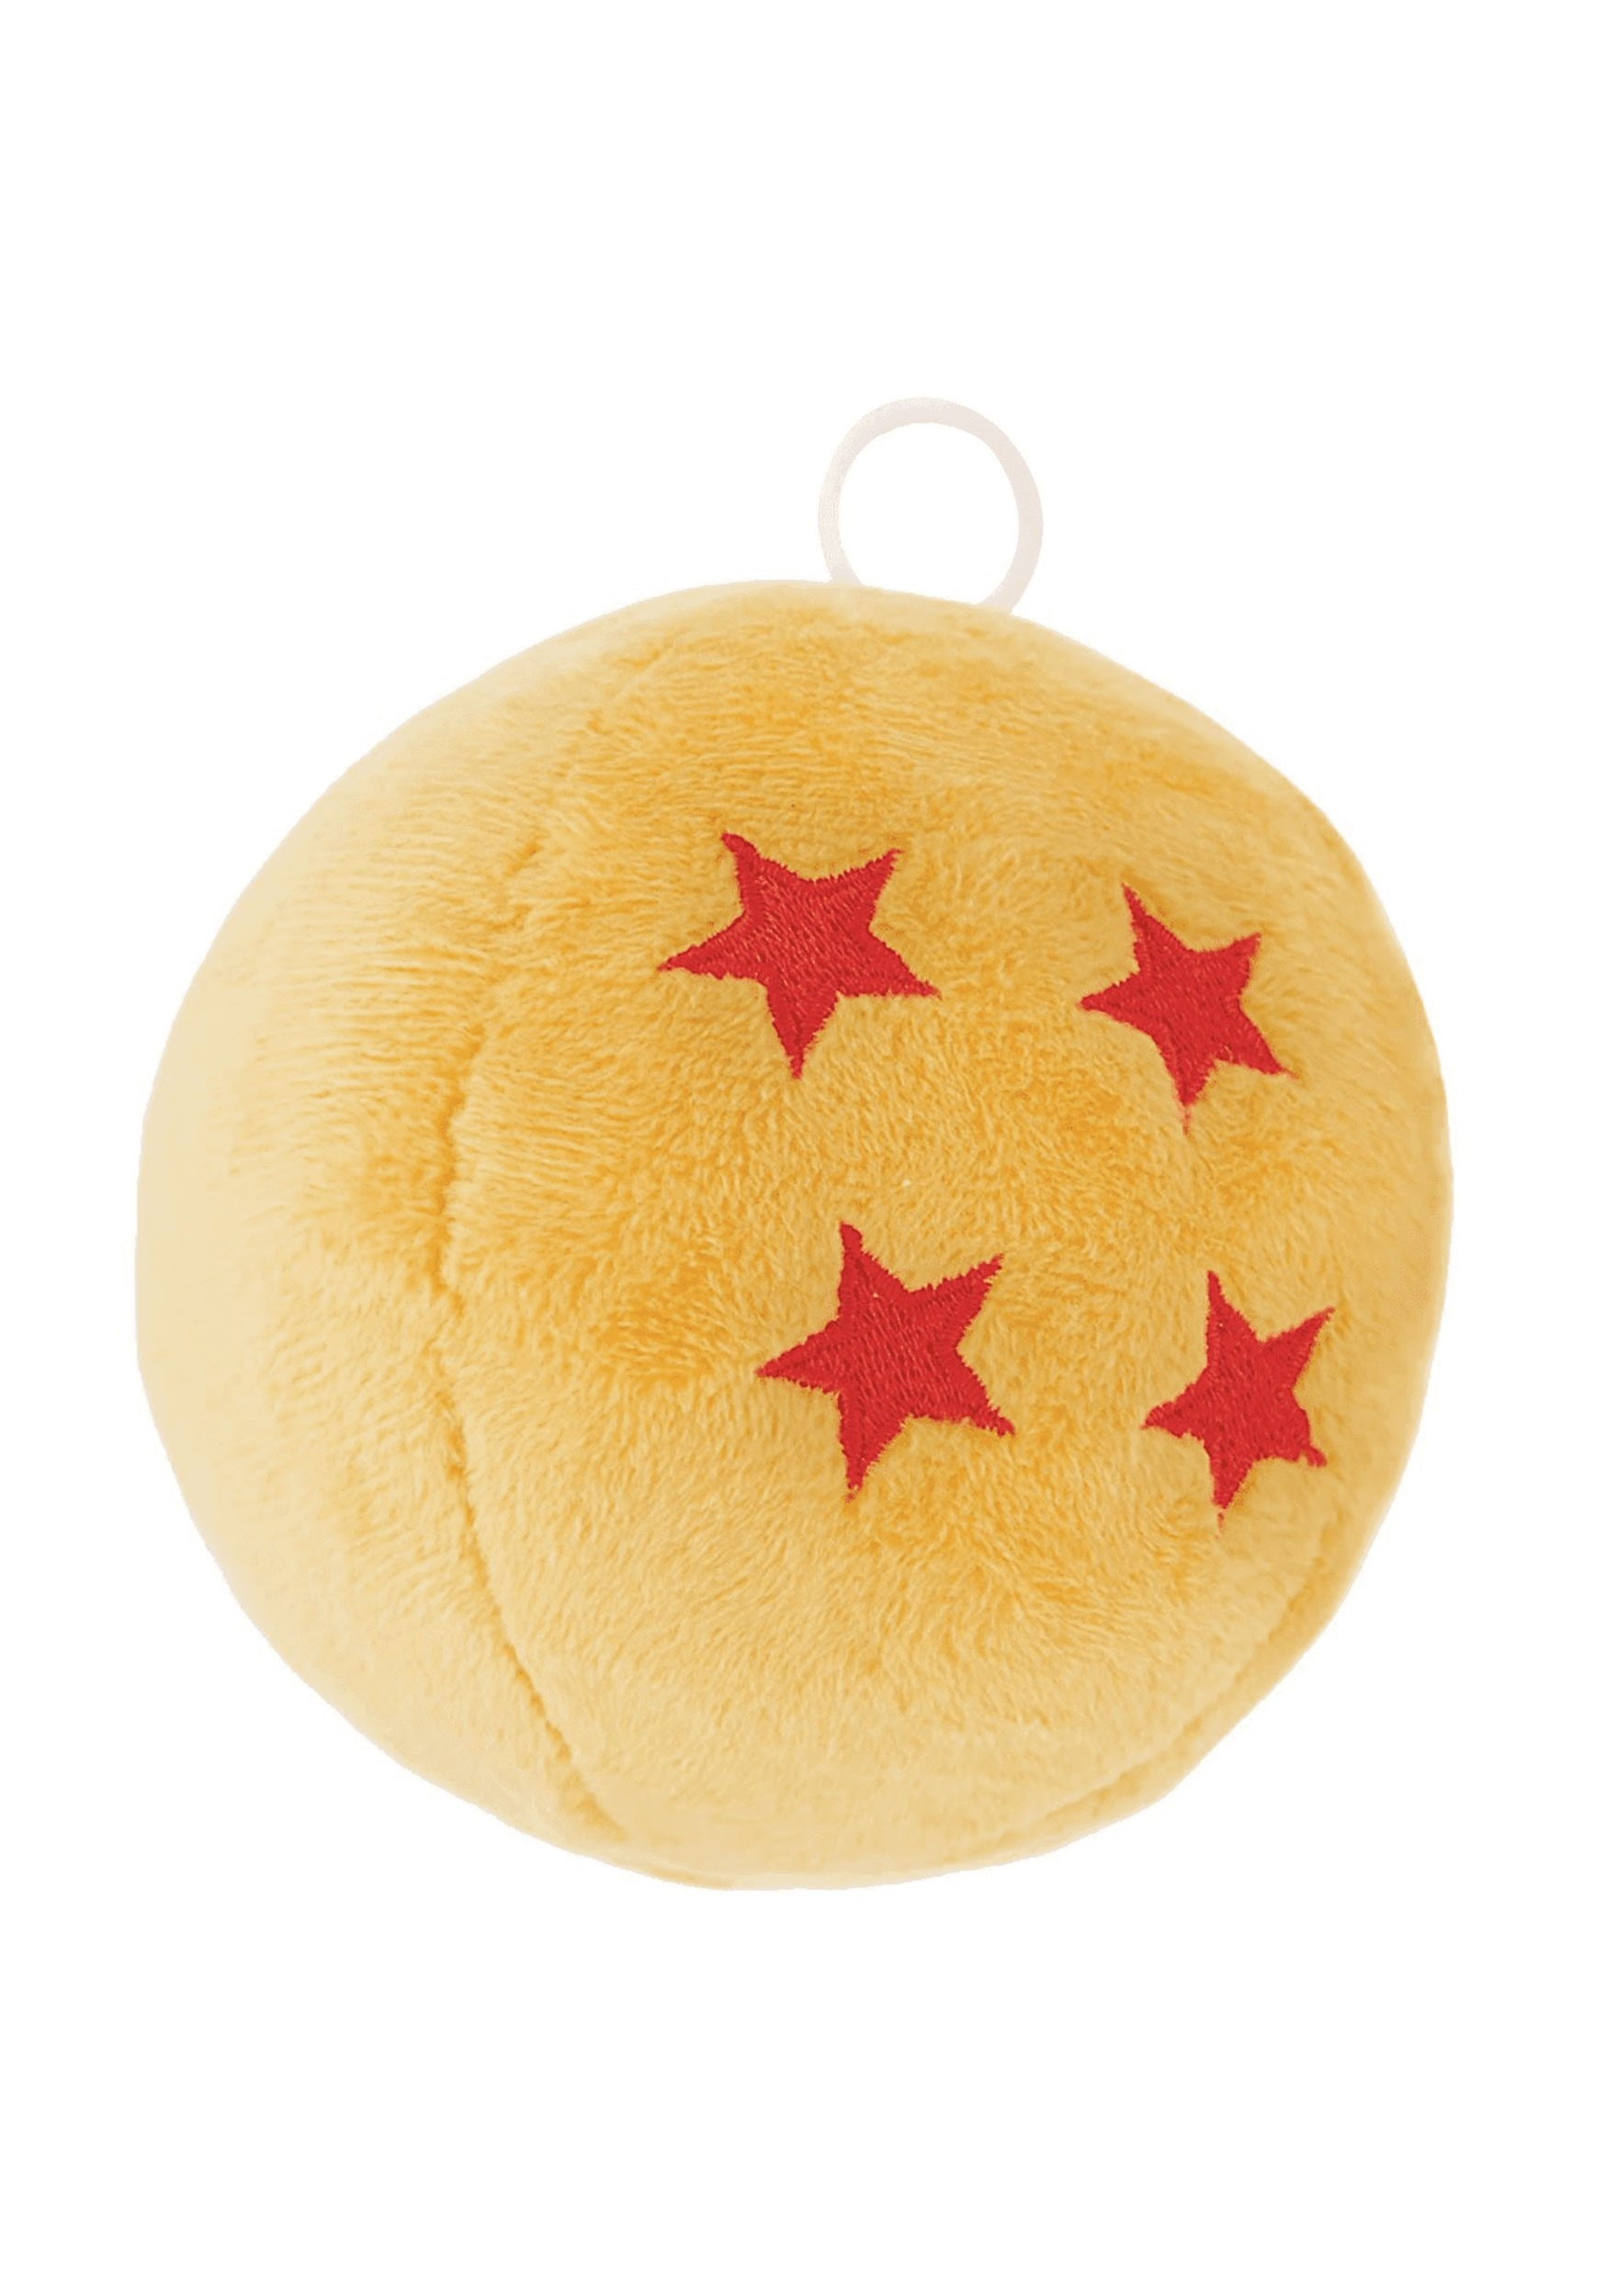 4_Dragon_Ball_Z_Rumbling_Dragon_Ball_Plush